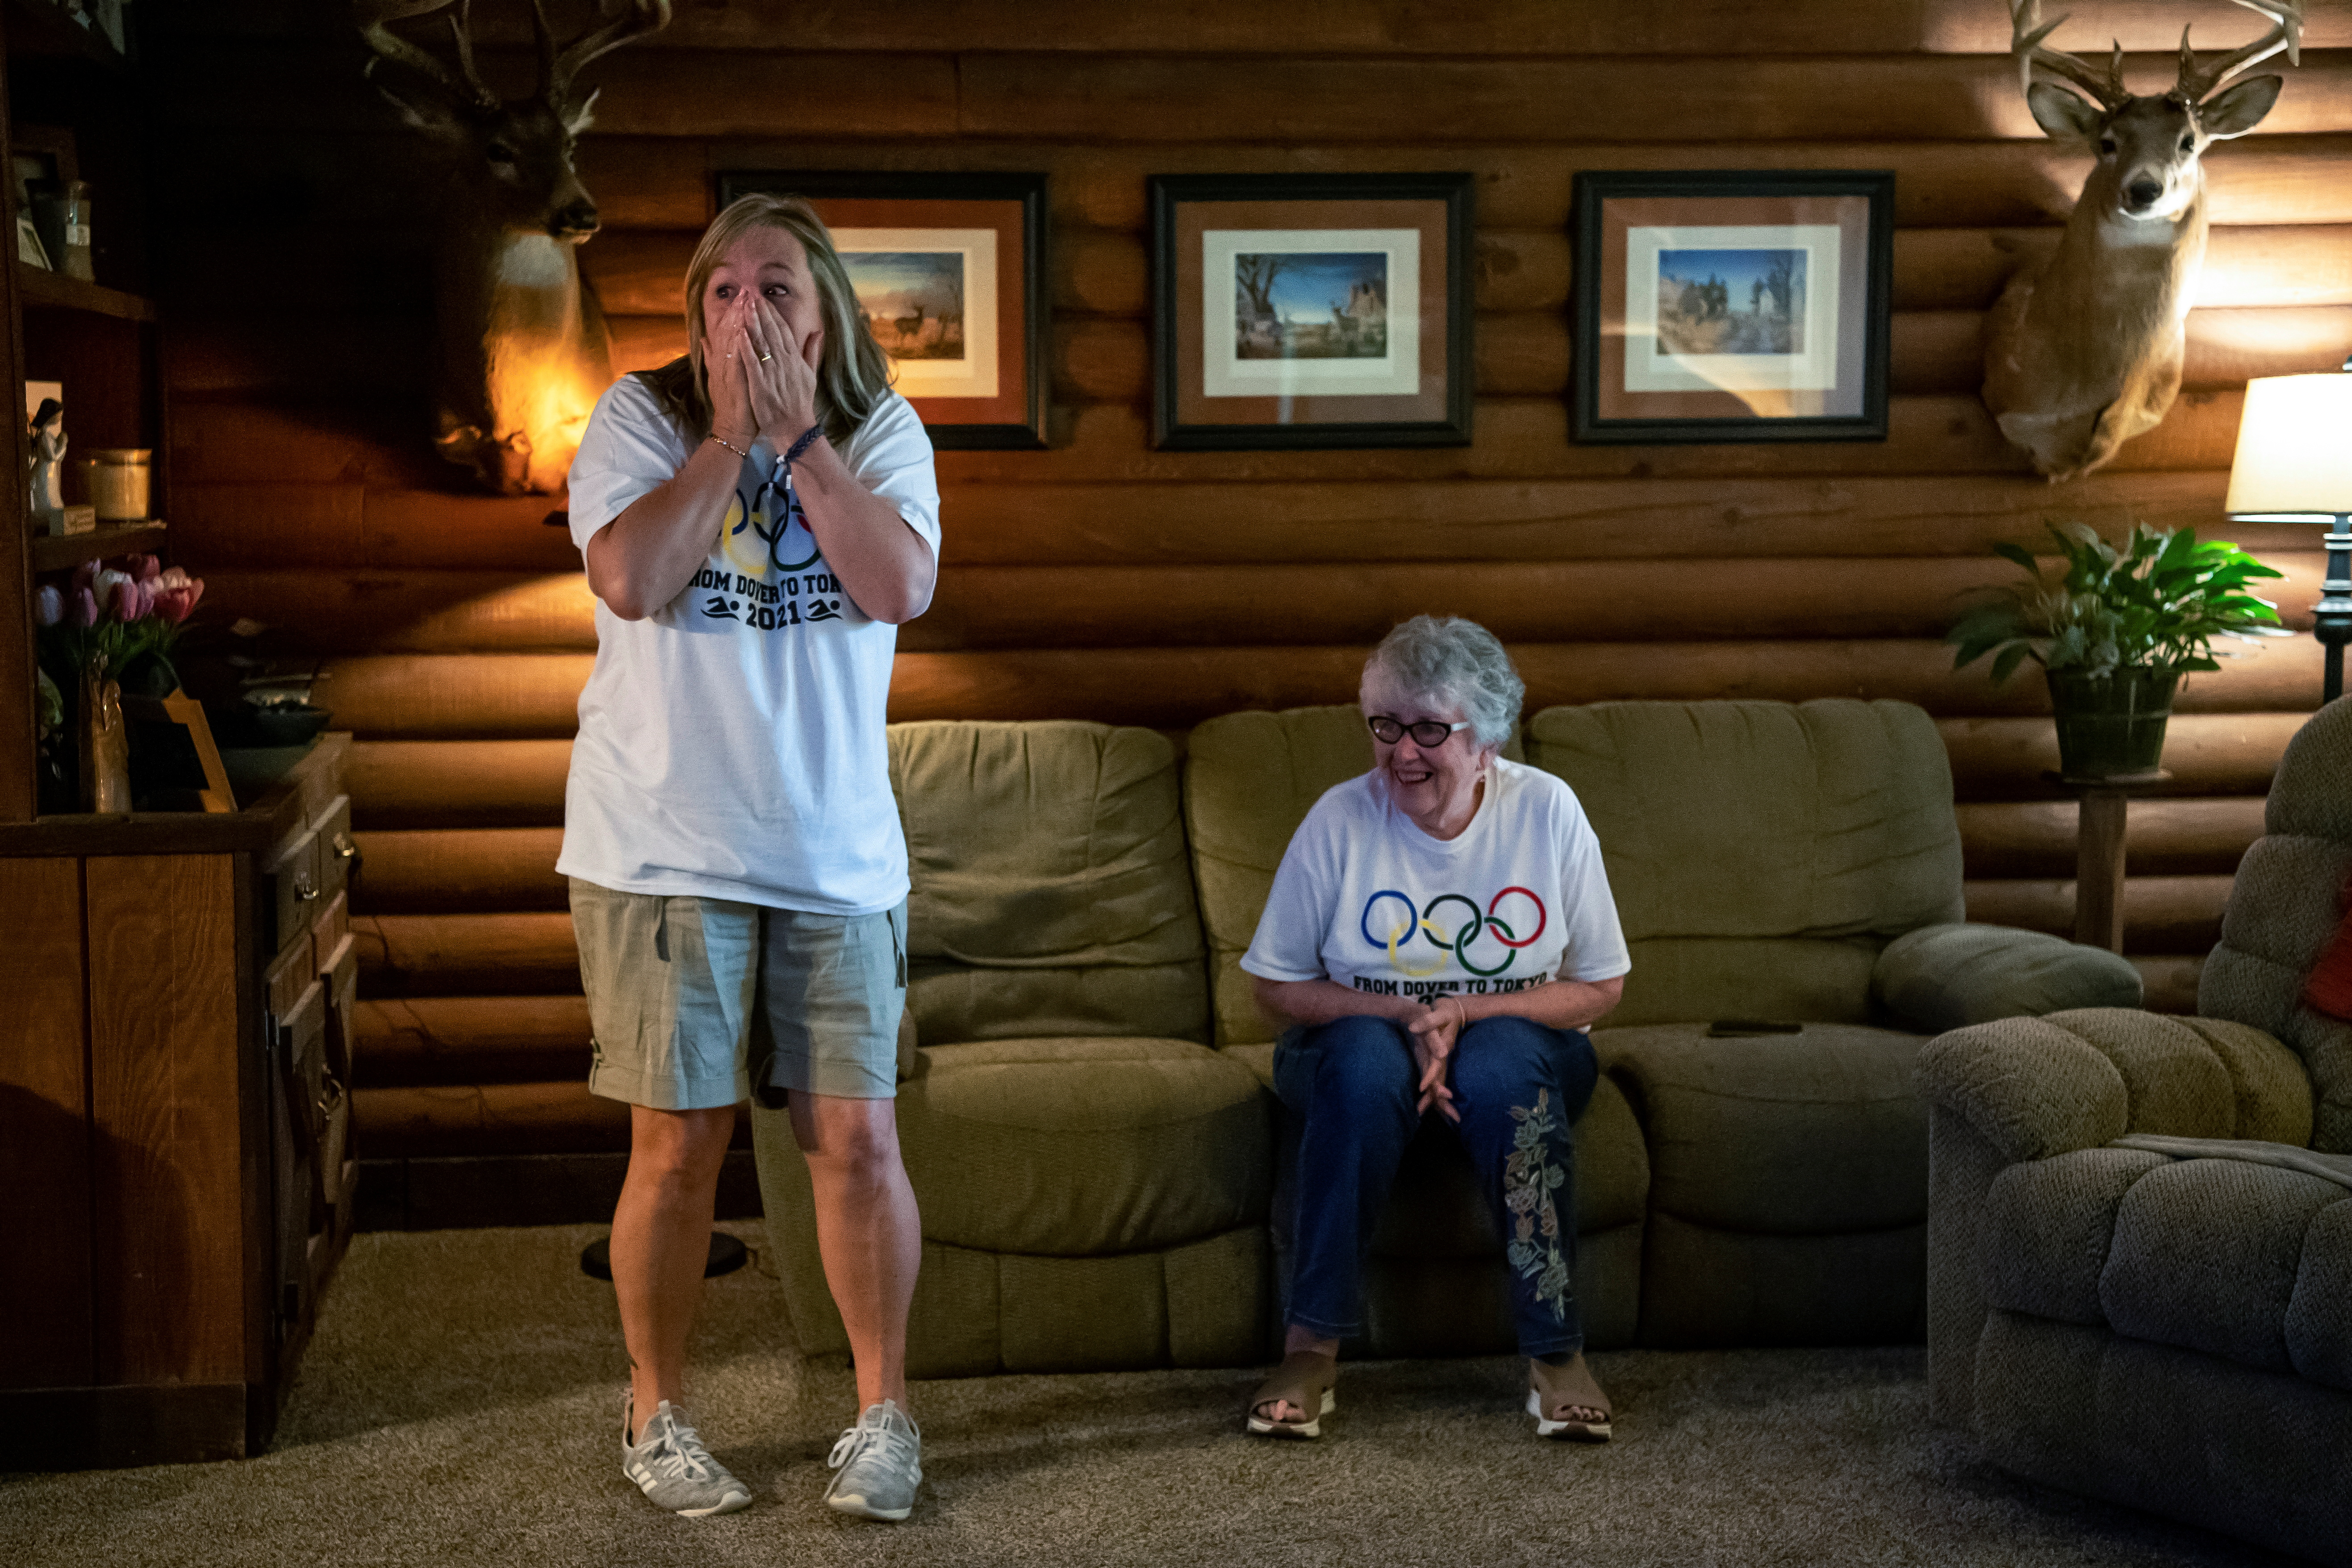 Edie Armstrong reacts when she hears that her son, U.S. swimmer Hunter Armstrong, will be moving on after just making it through the men's 100m backstroke preliminary race during the 2021 Olympic Games, in Dover, Ohio, U.S., July 25, 2021.